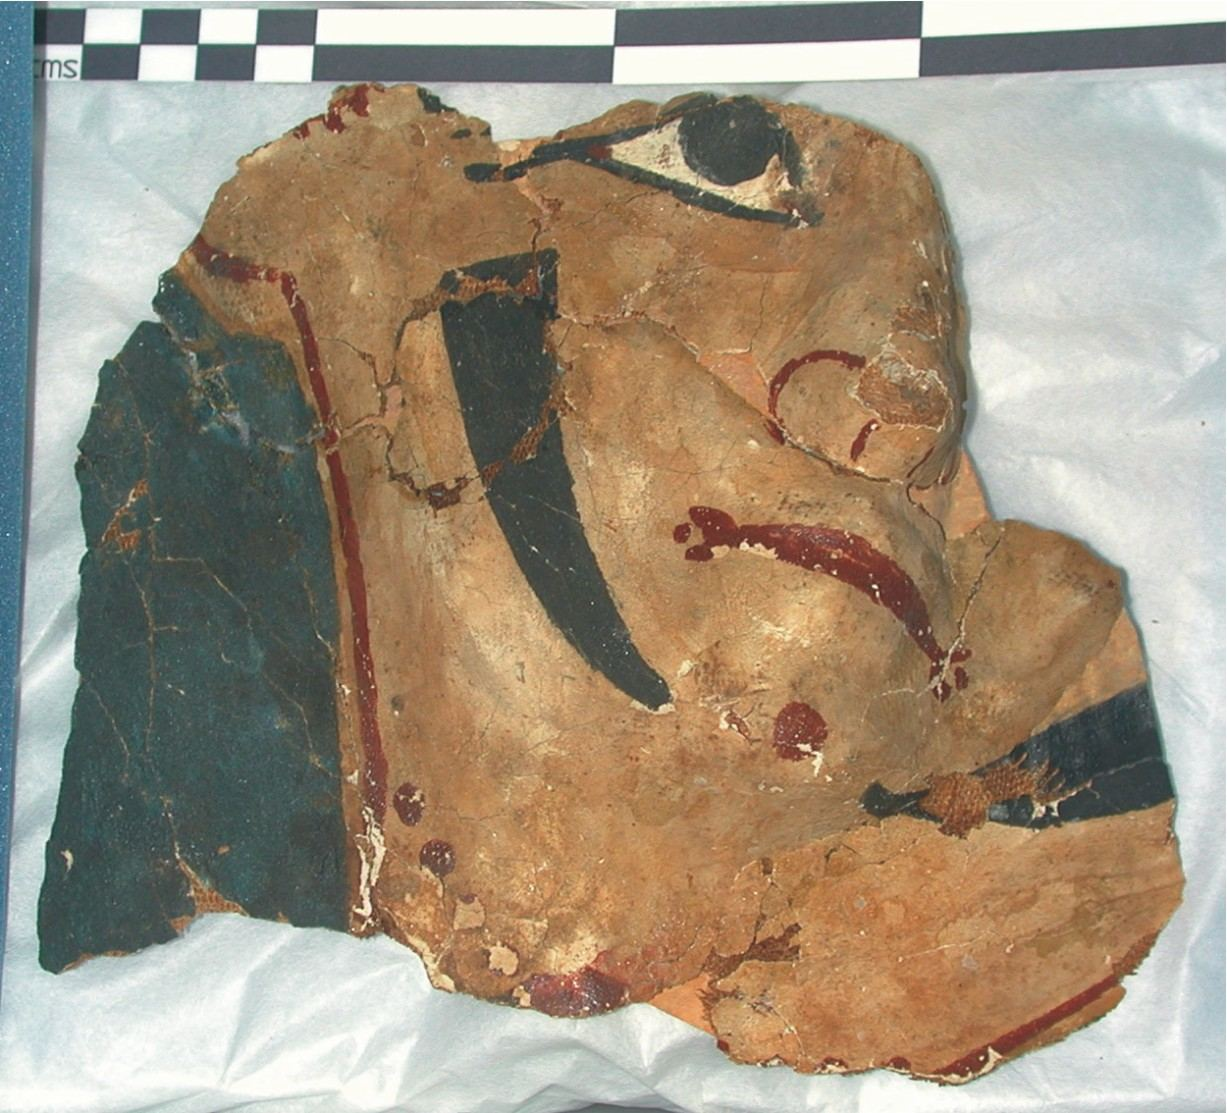 Image for: Fragment of a cartonnage mask